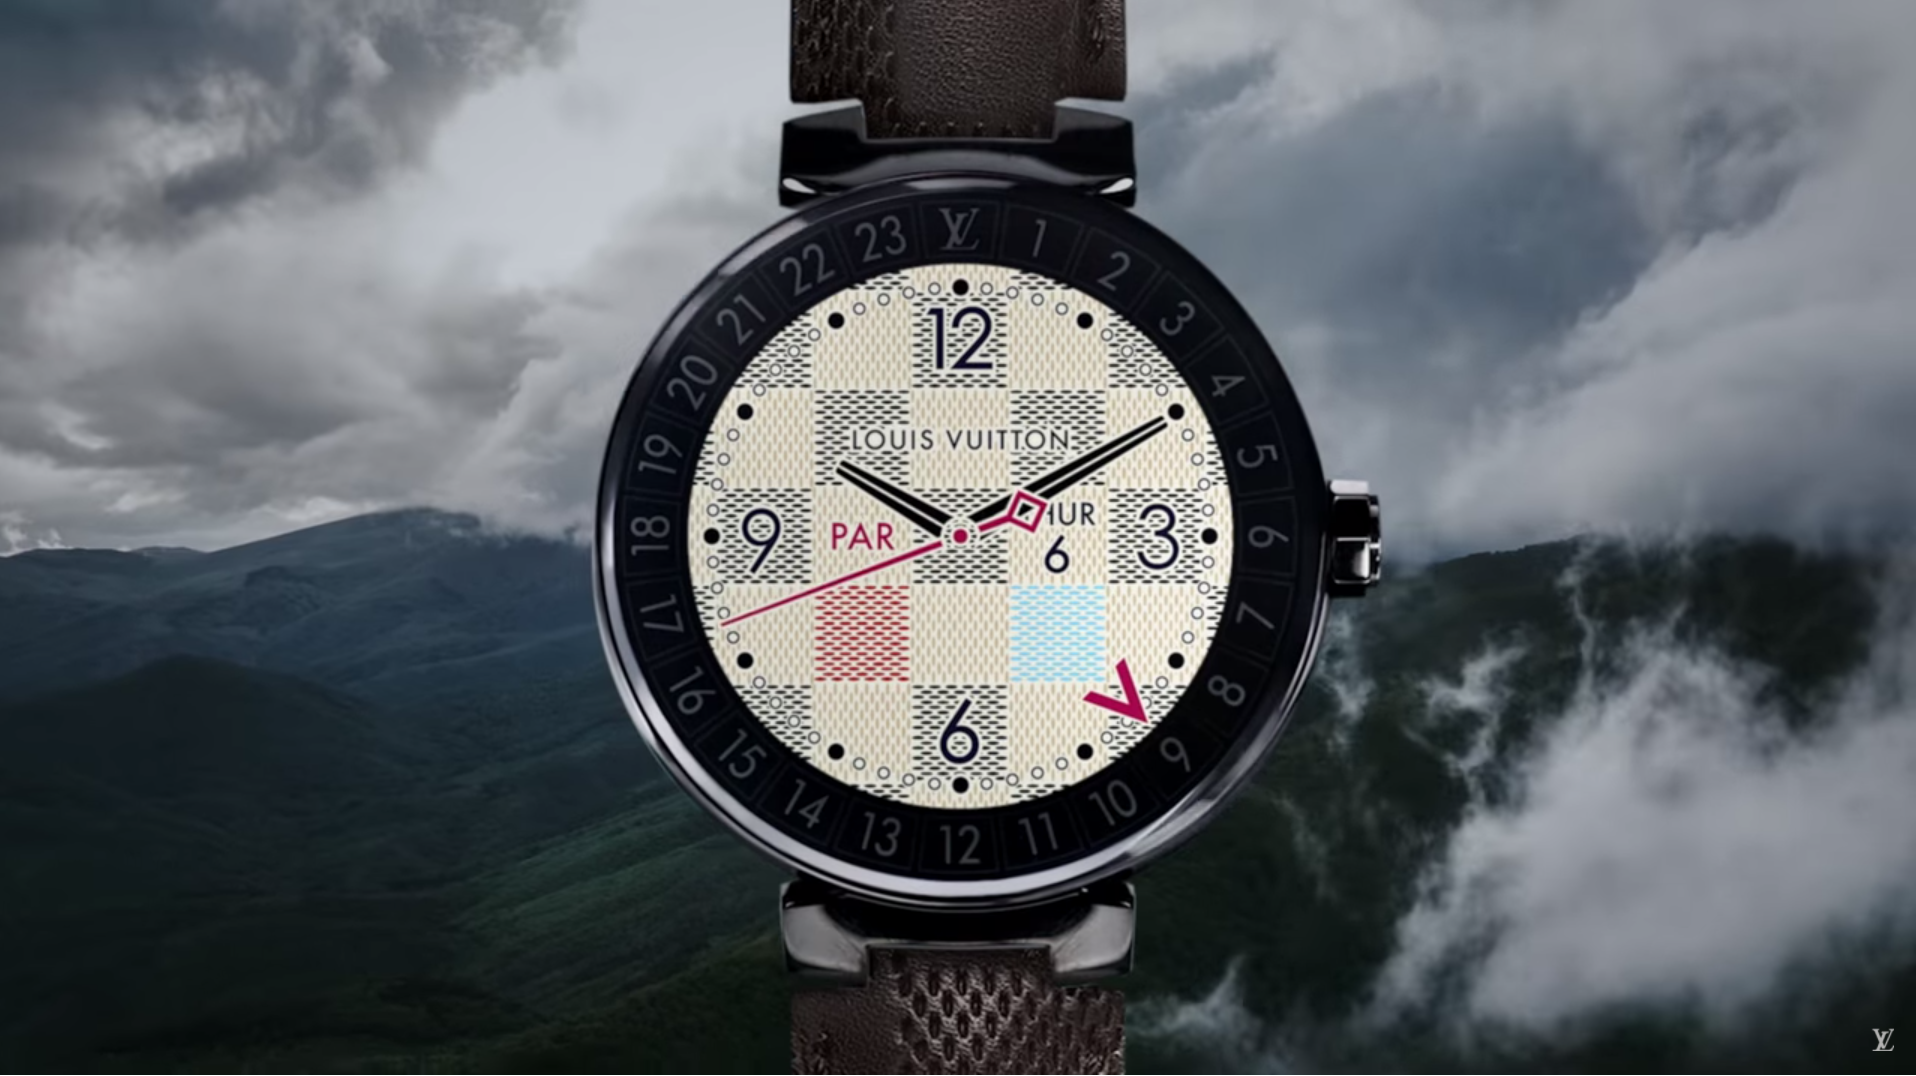 a7497a3adaeb Louis Vuitton announces the Tambour Horizon Android Wear watch ...